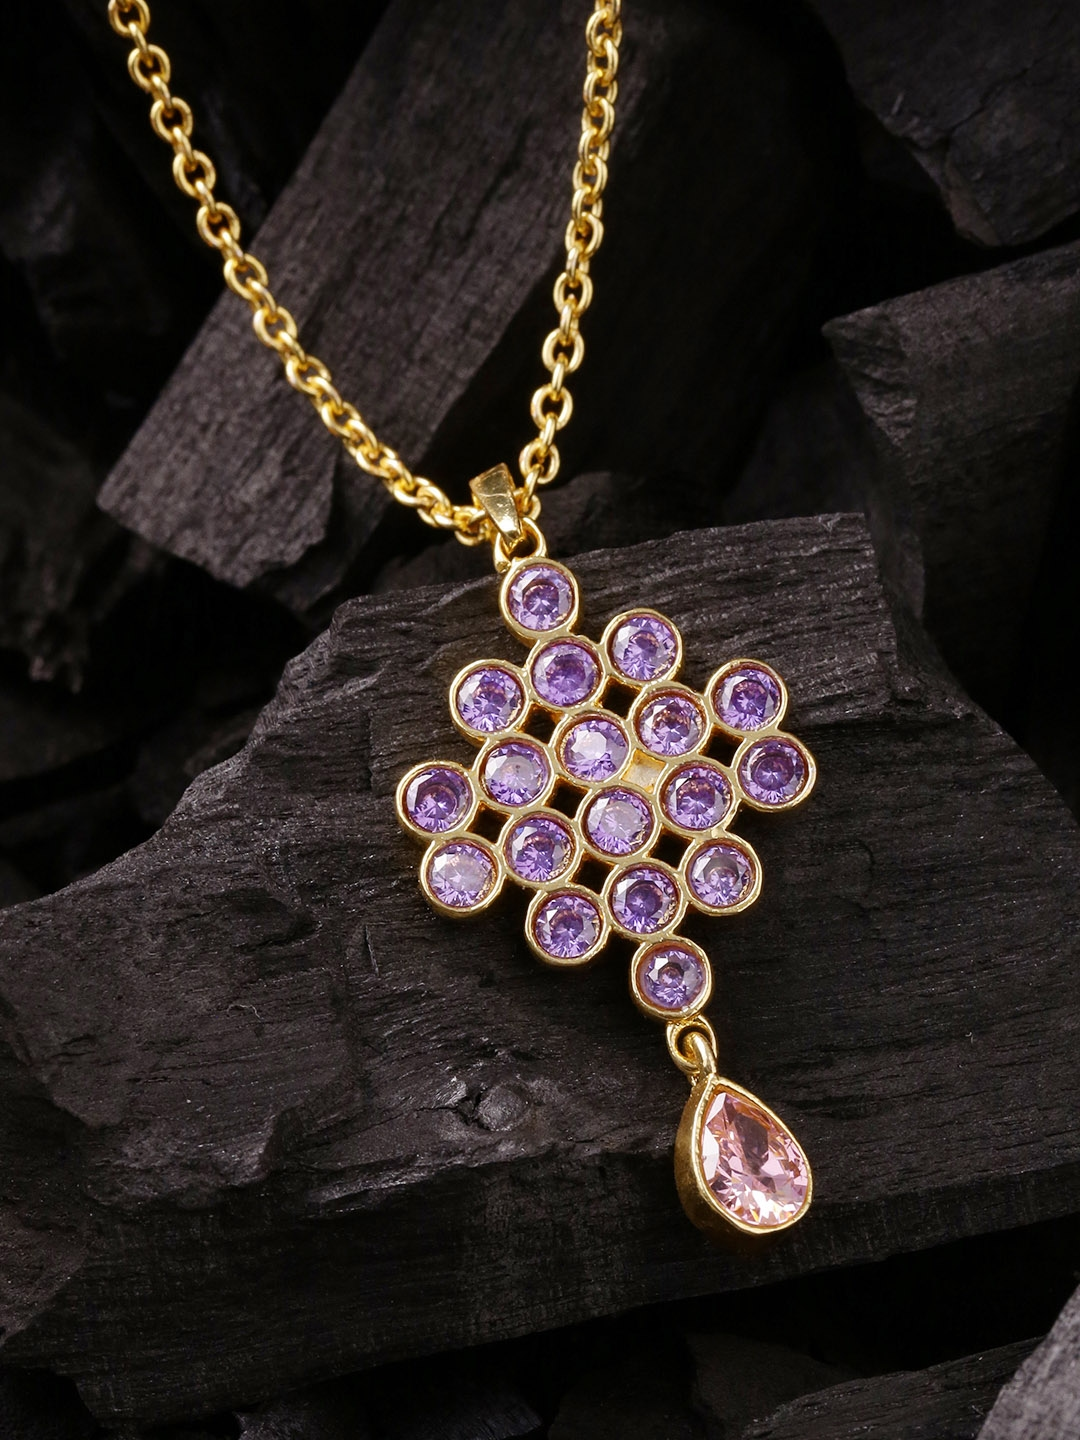 d83000ce55f29 Buy Voylla Gold Toned   Purple Gold Plated Pendant With Chain ...